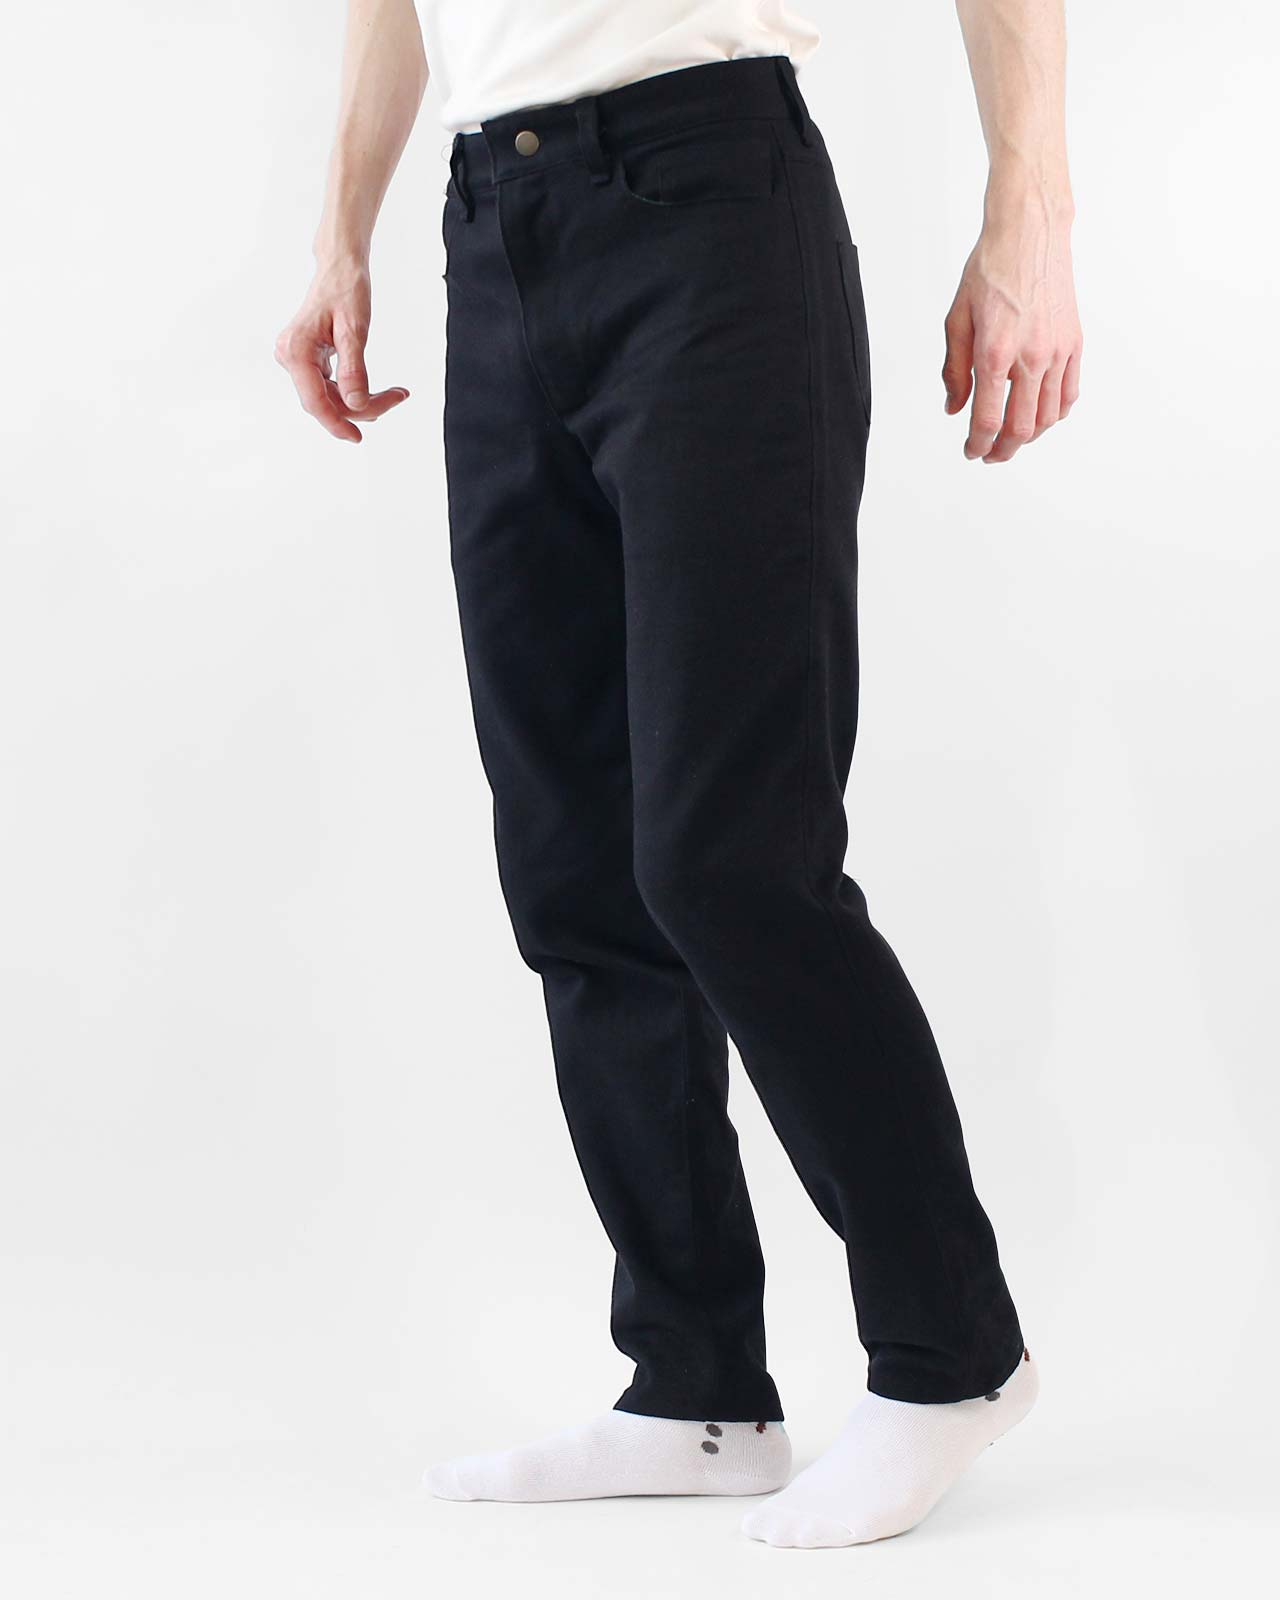 Handmade Mens Black Jeans